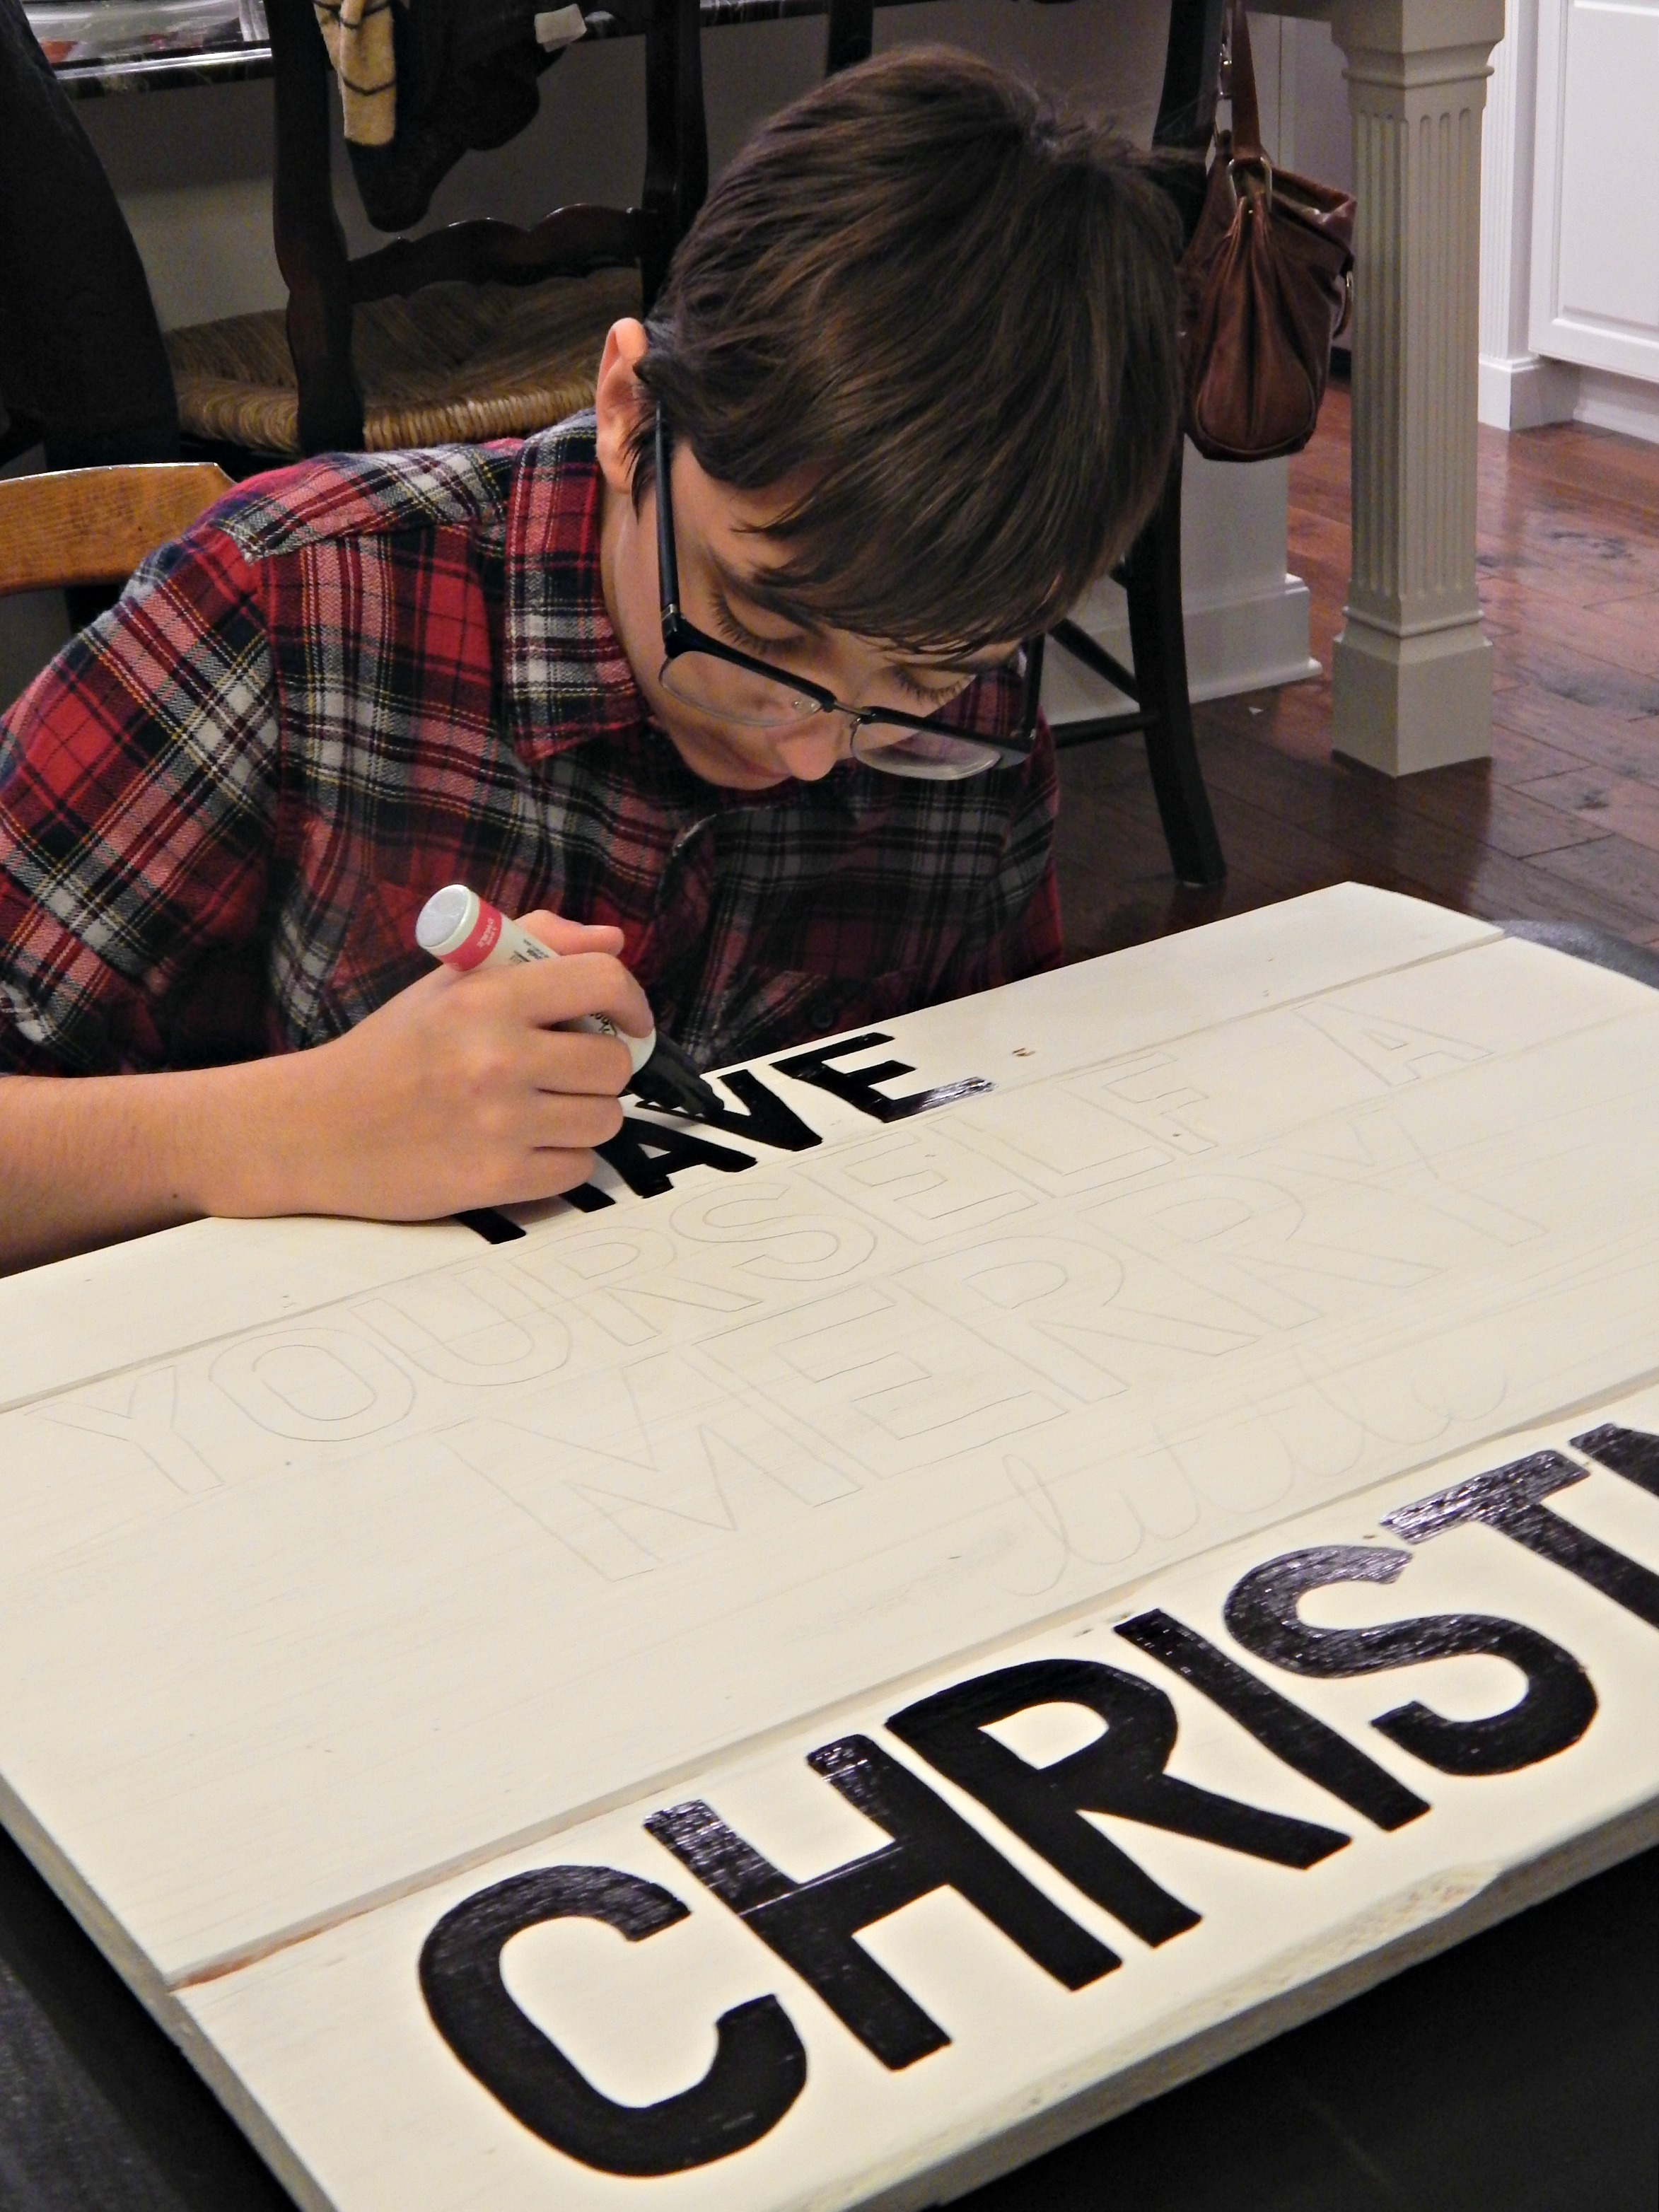 Wood archives stylish revamp hand painting diy christmas signs using sharpie paint pens solutioingenieria Images